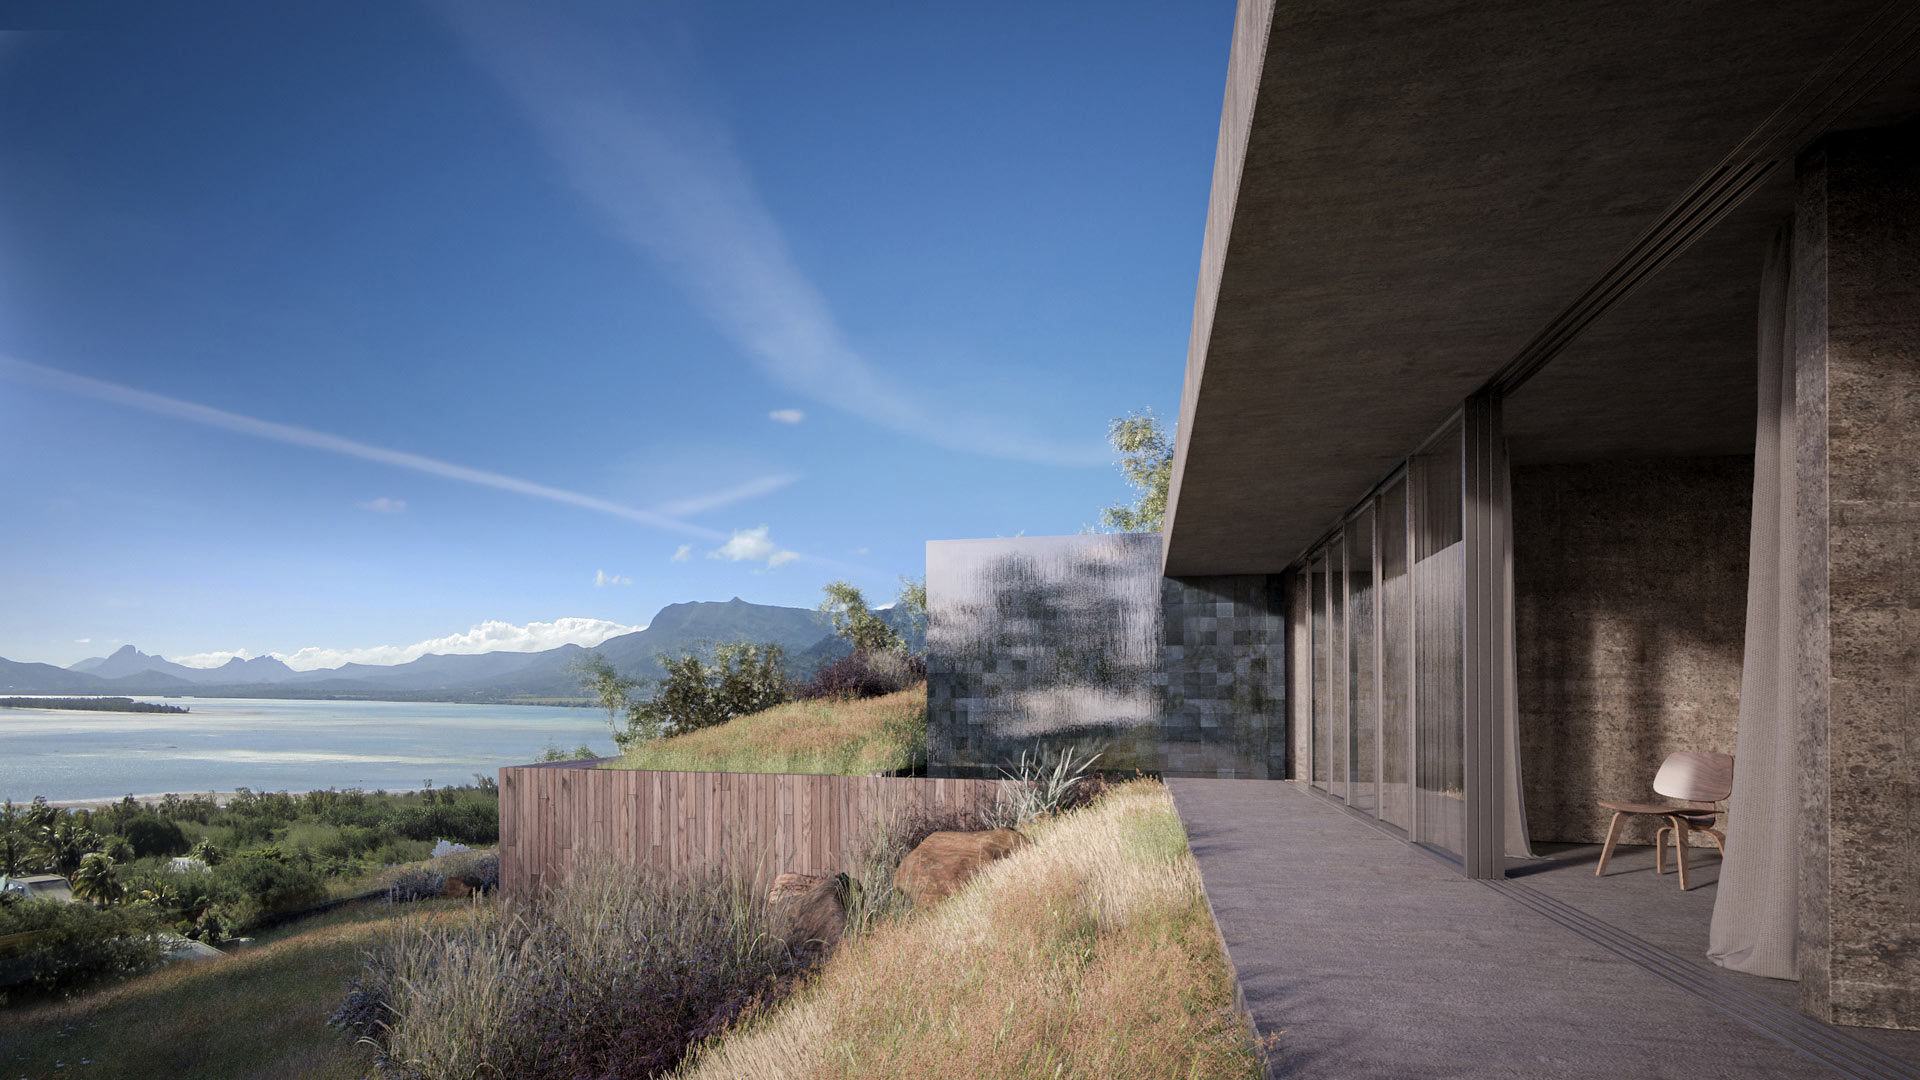 Le Morne Mauritius Luxury Eco Villas - 3D Visualisation